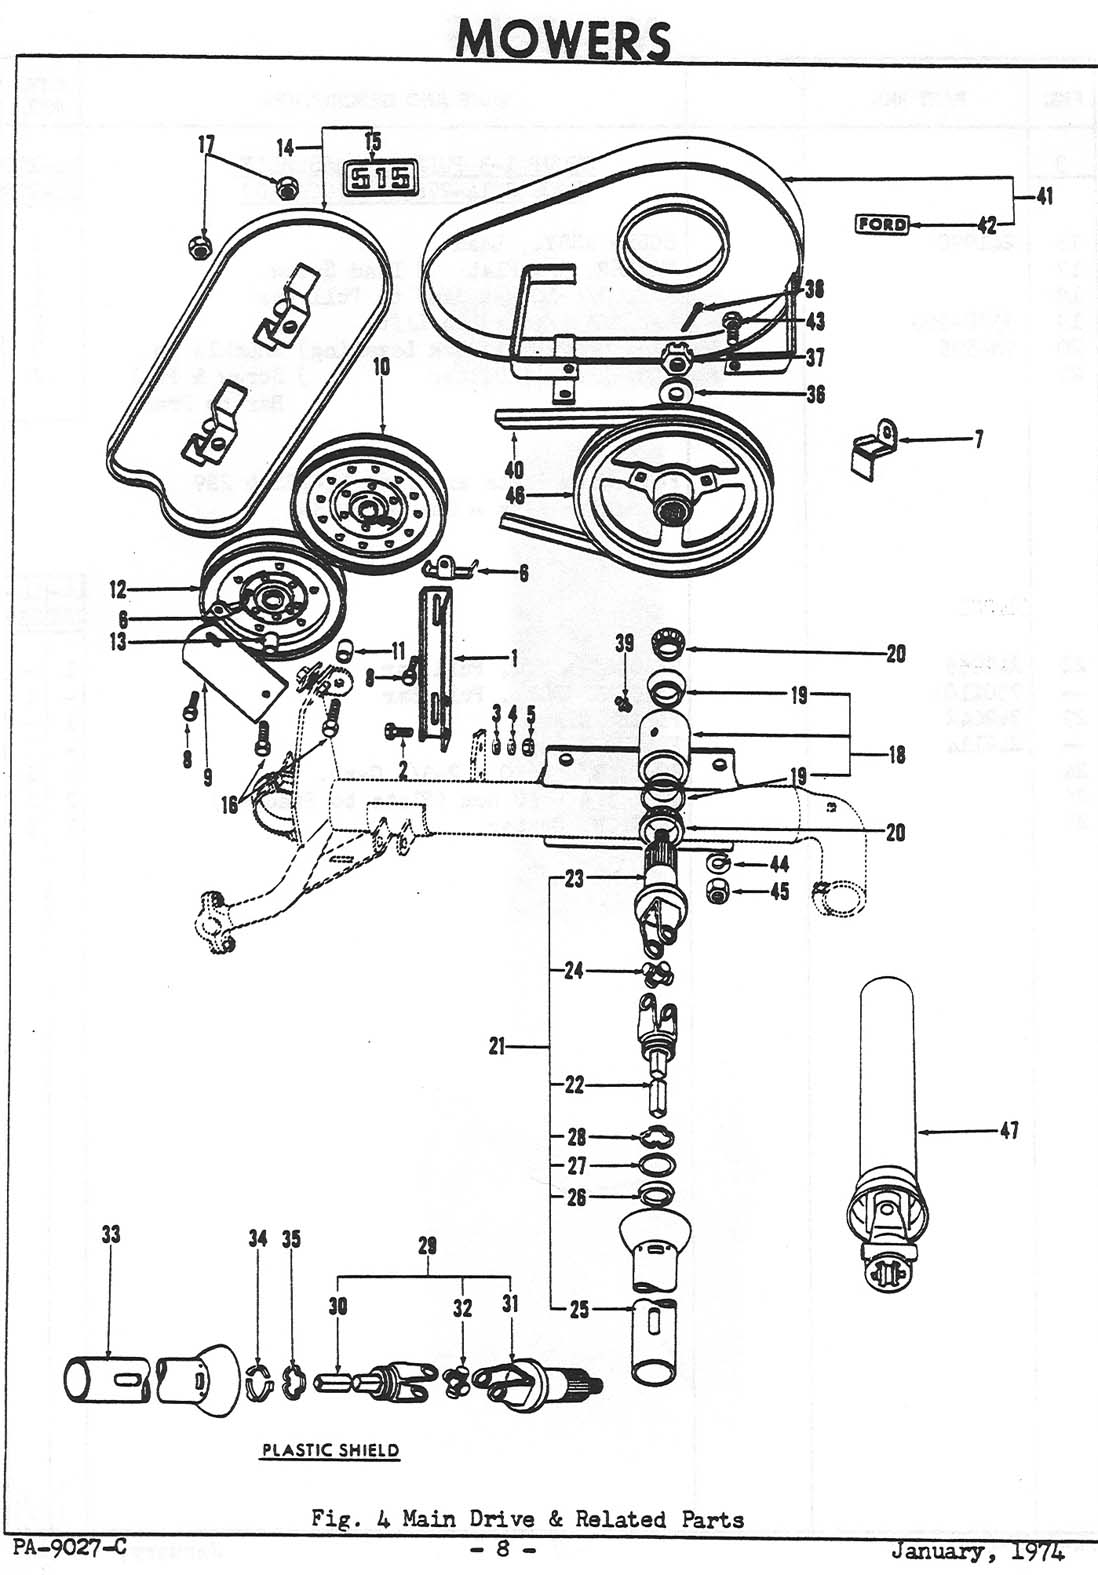 Ford 1710 Tractor Parts Breakdown : Ford tractor parts diagram bing images